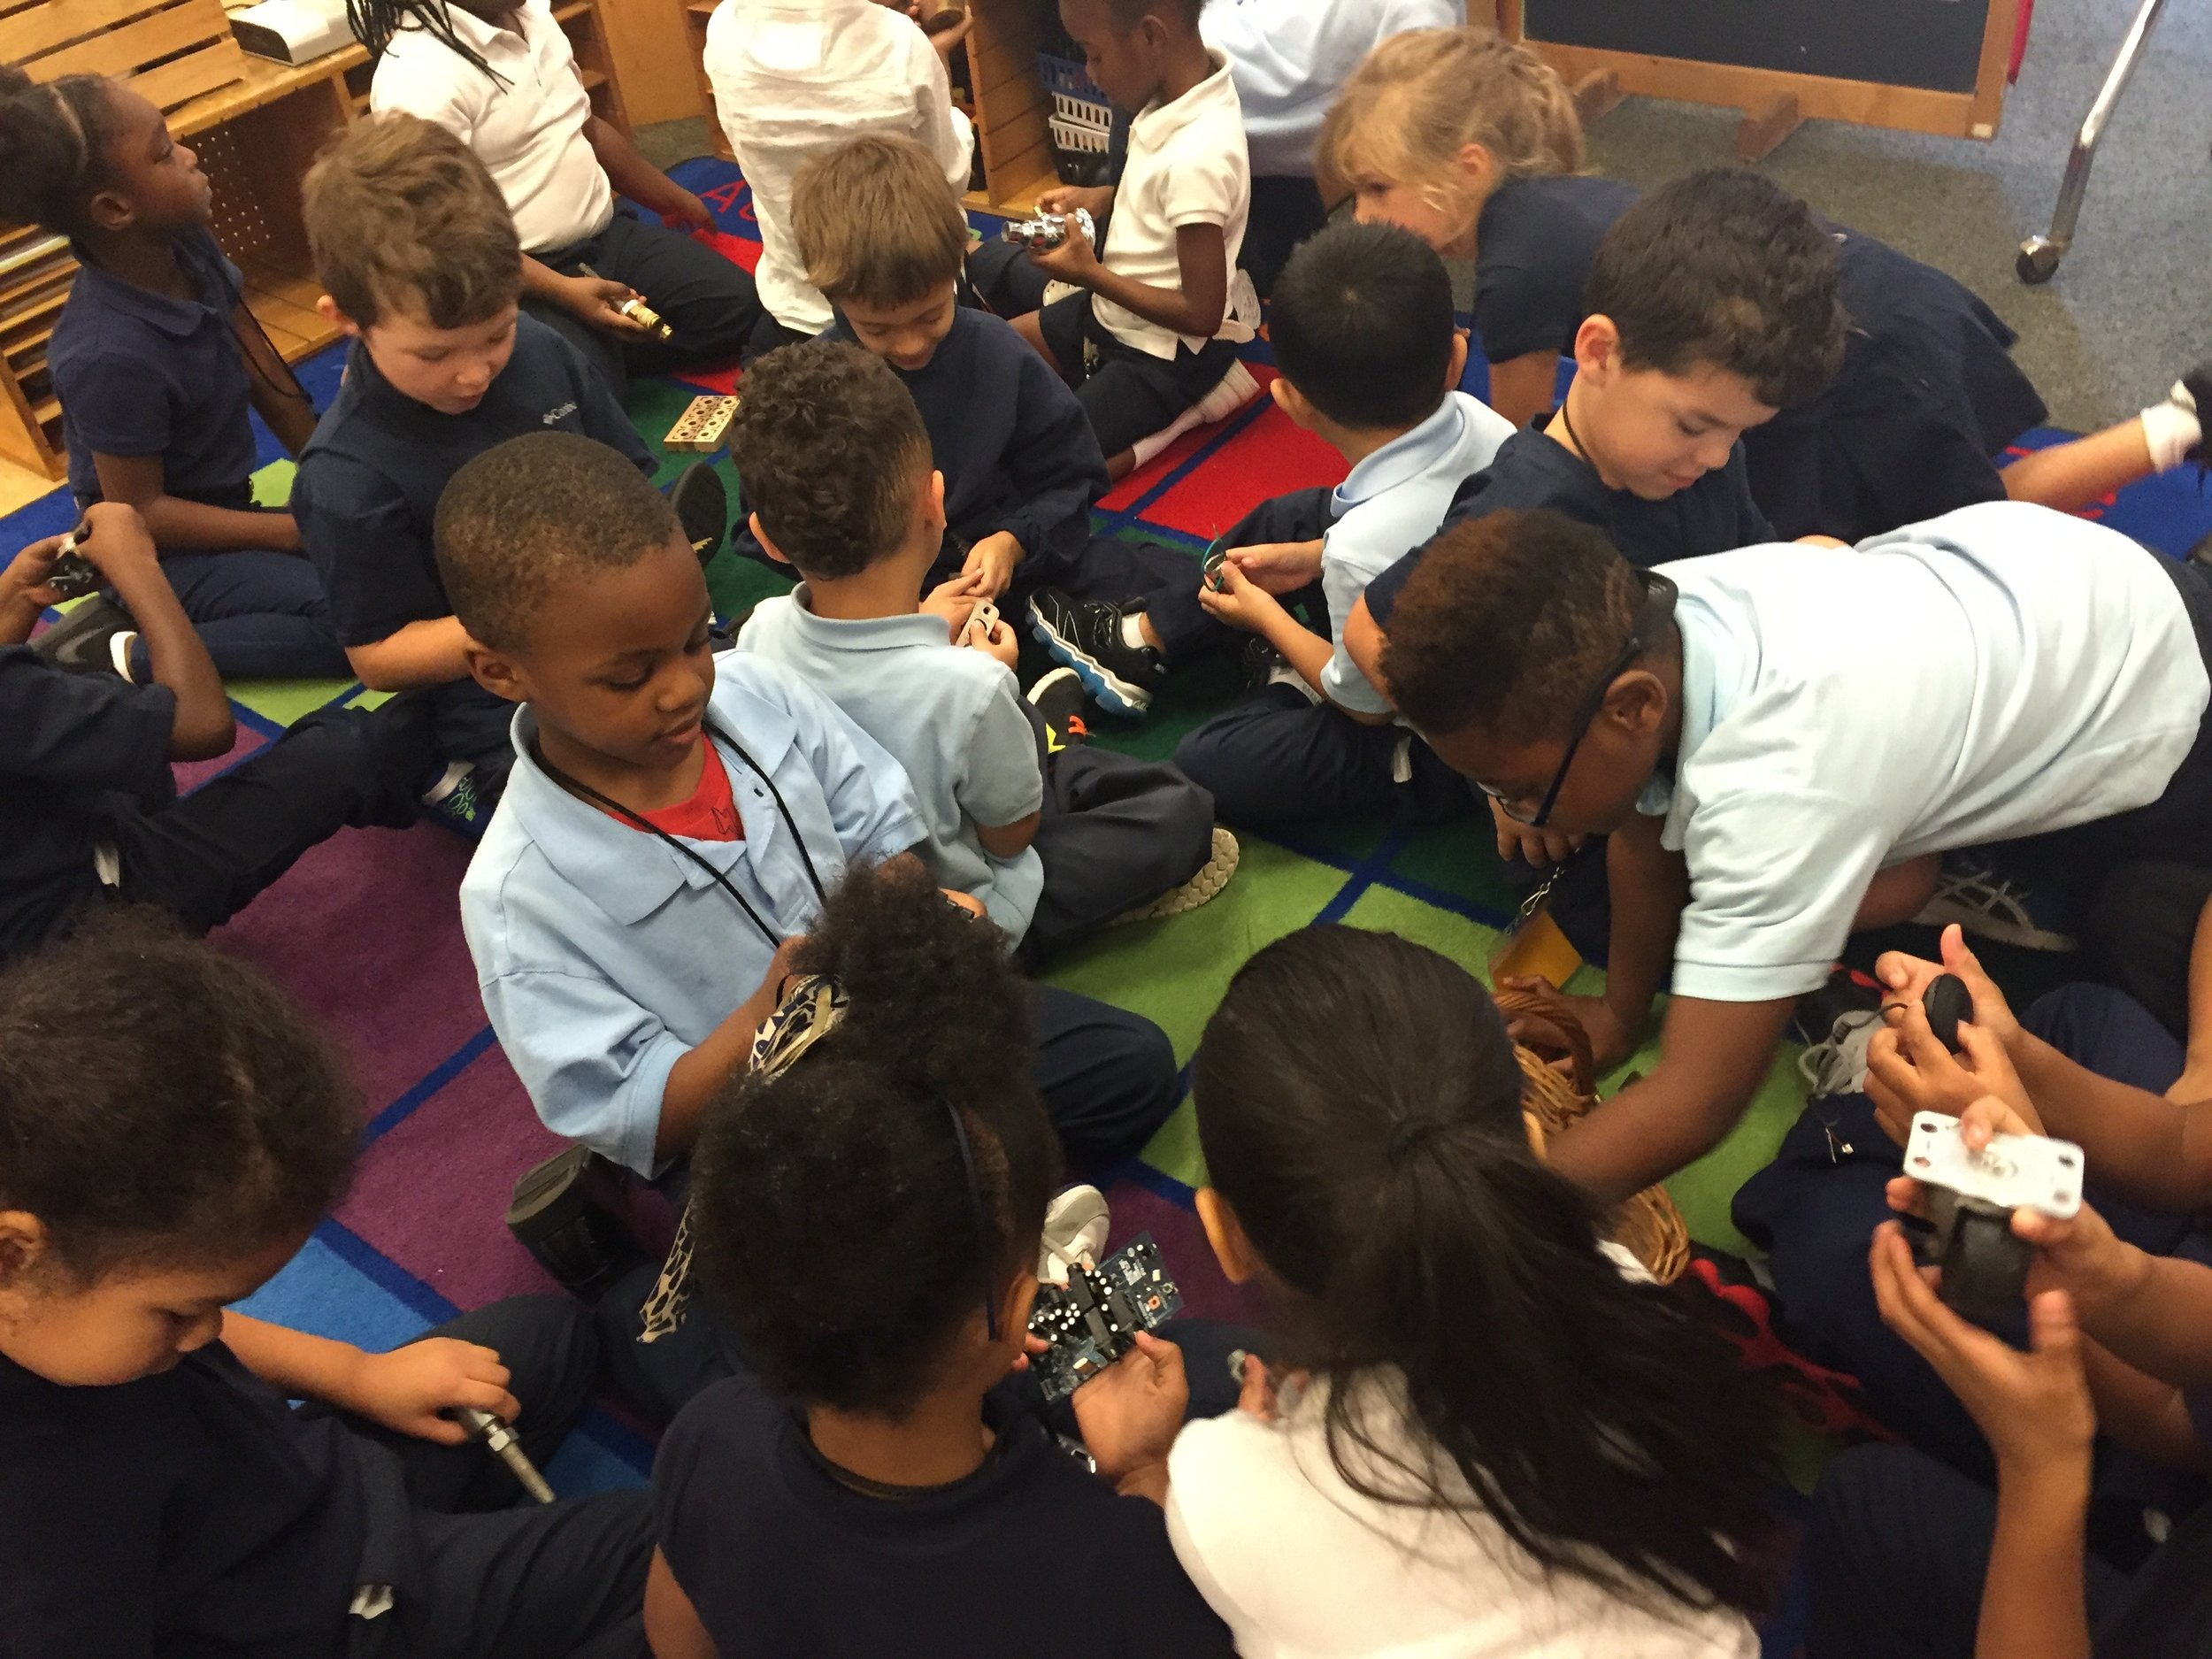 children collaborate and create thinking with others of various backgrounds with rigor and kindness -